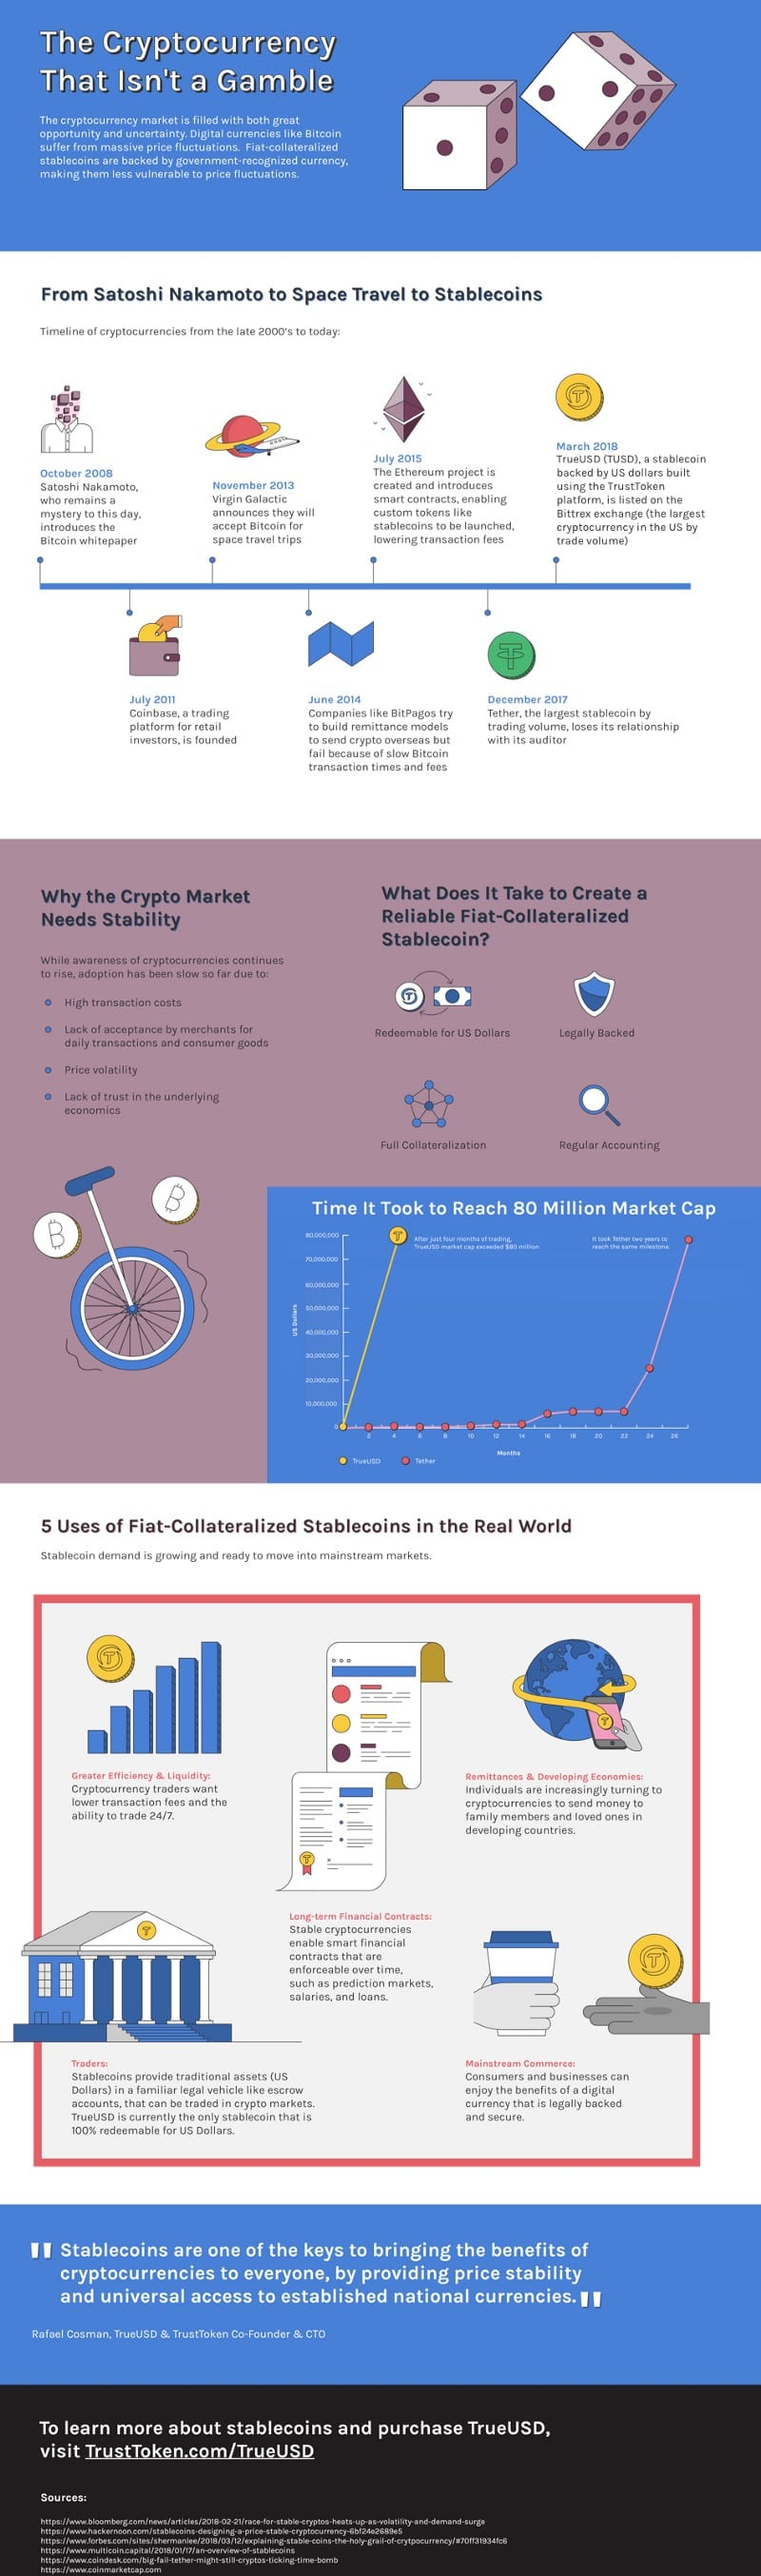 TrustToken StableCoin Cryptocurrency History Infographic